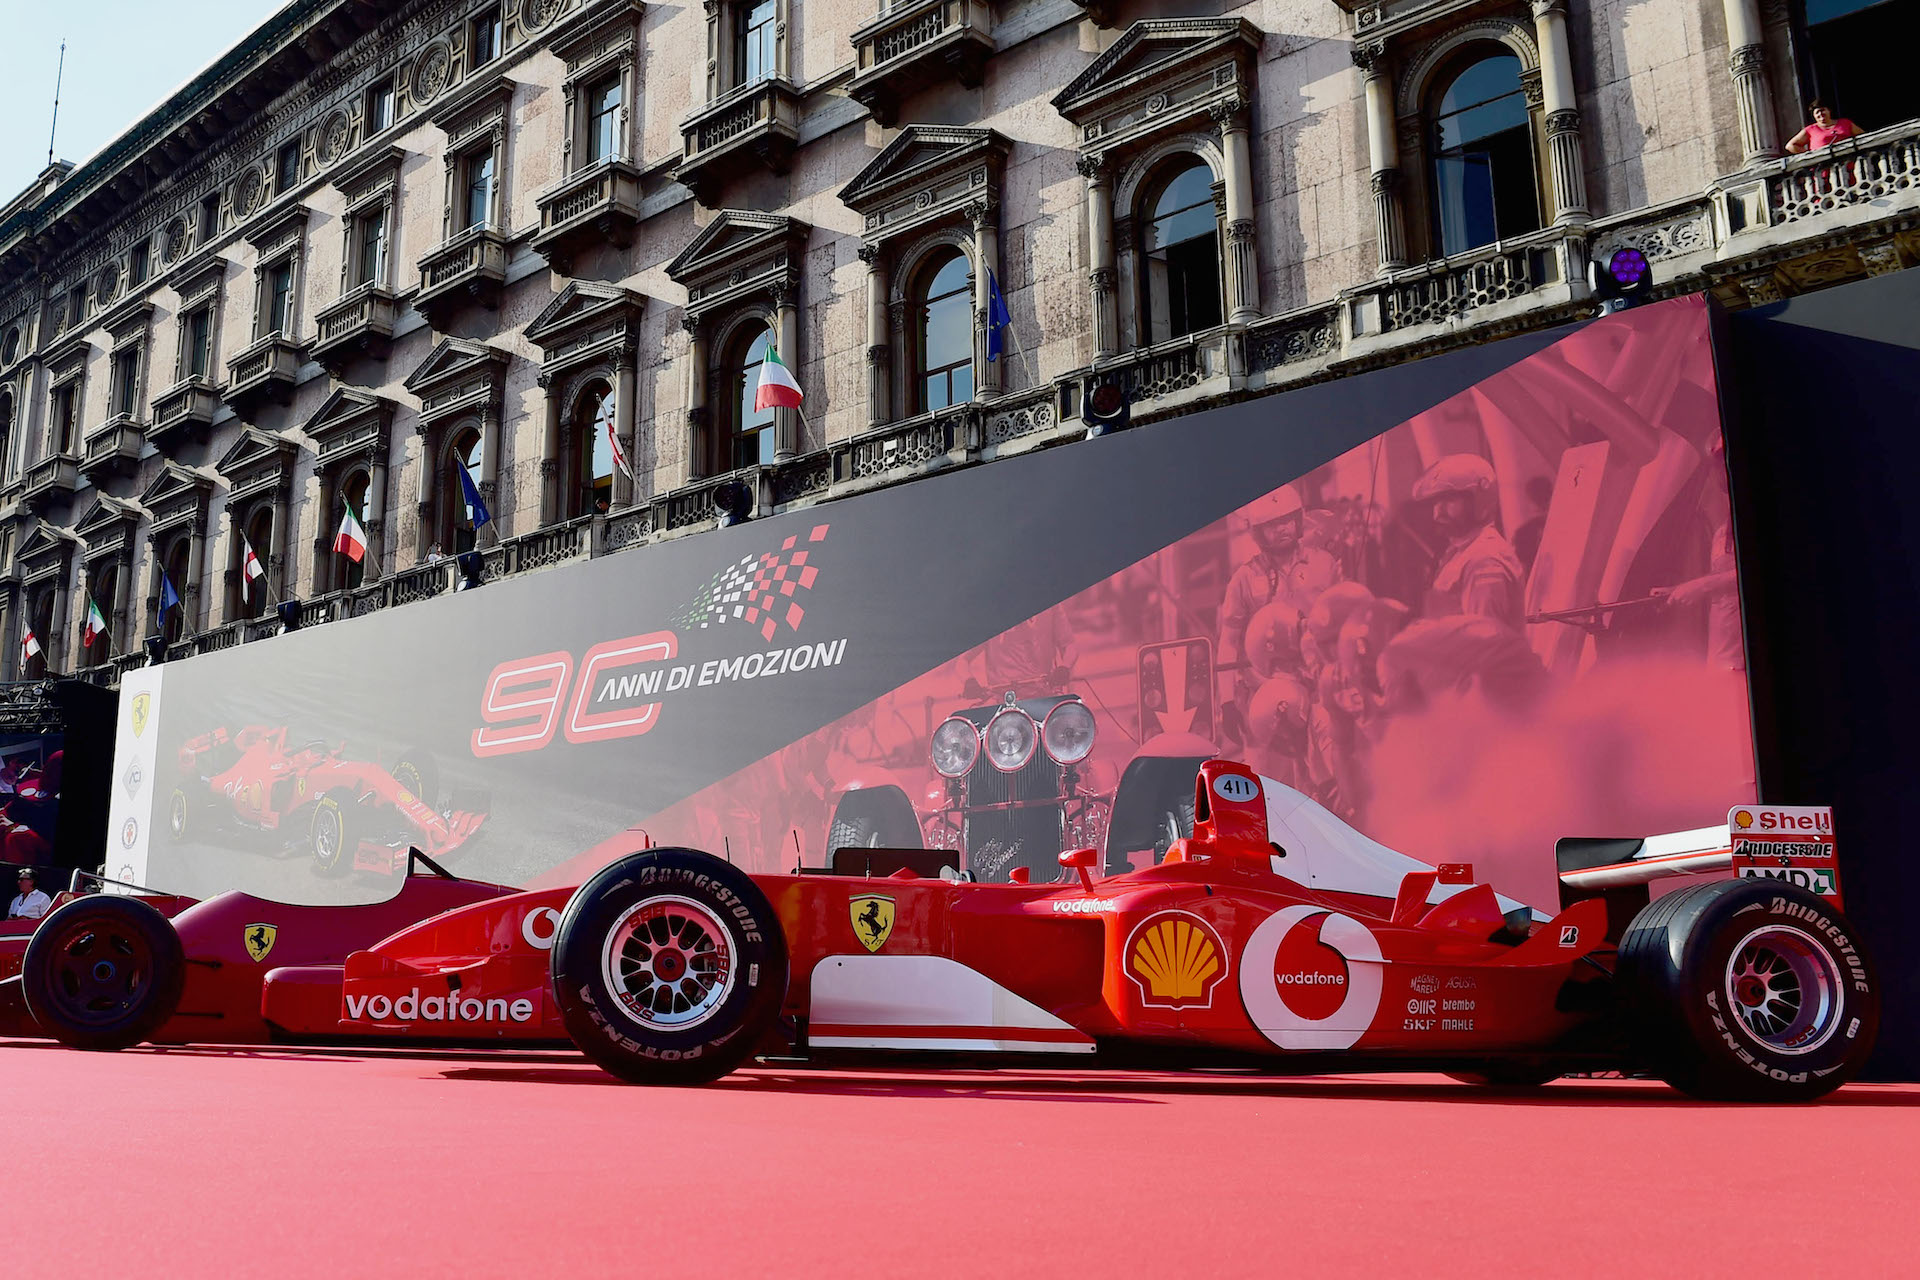 2019 Ferrari 90 Years celebration at Milan | 4 Sept 2019 website 6.jpg